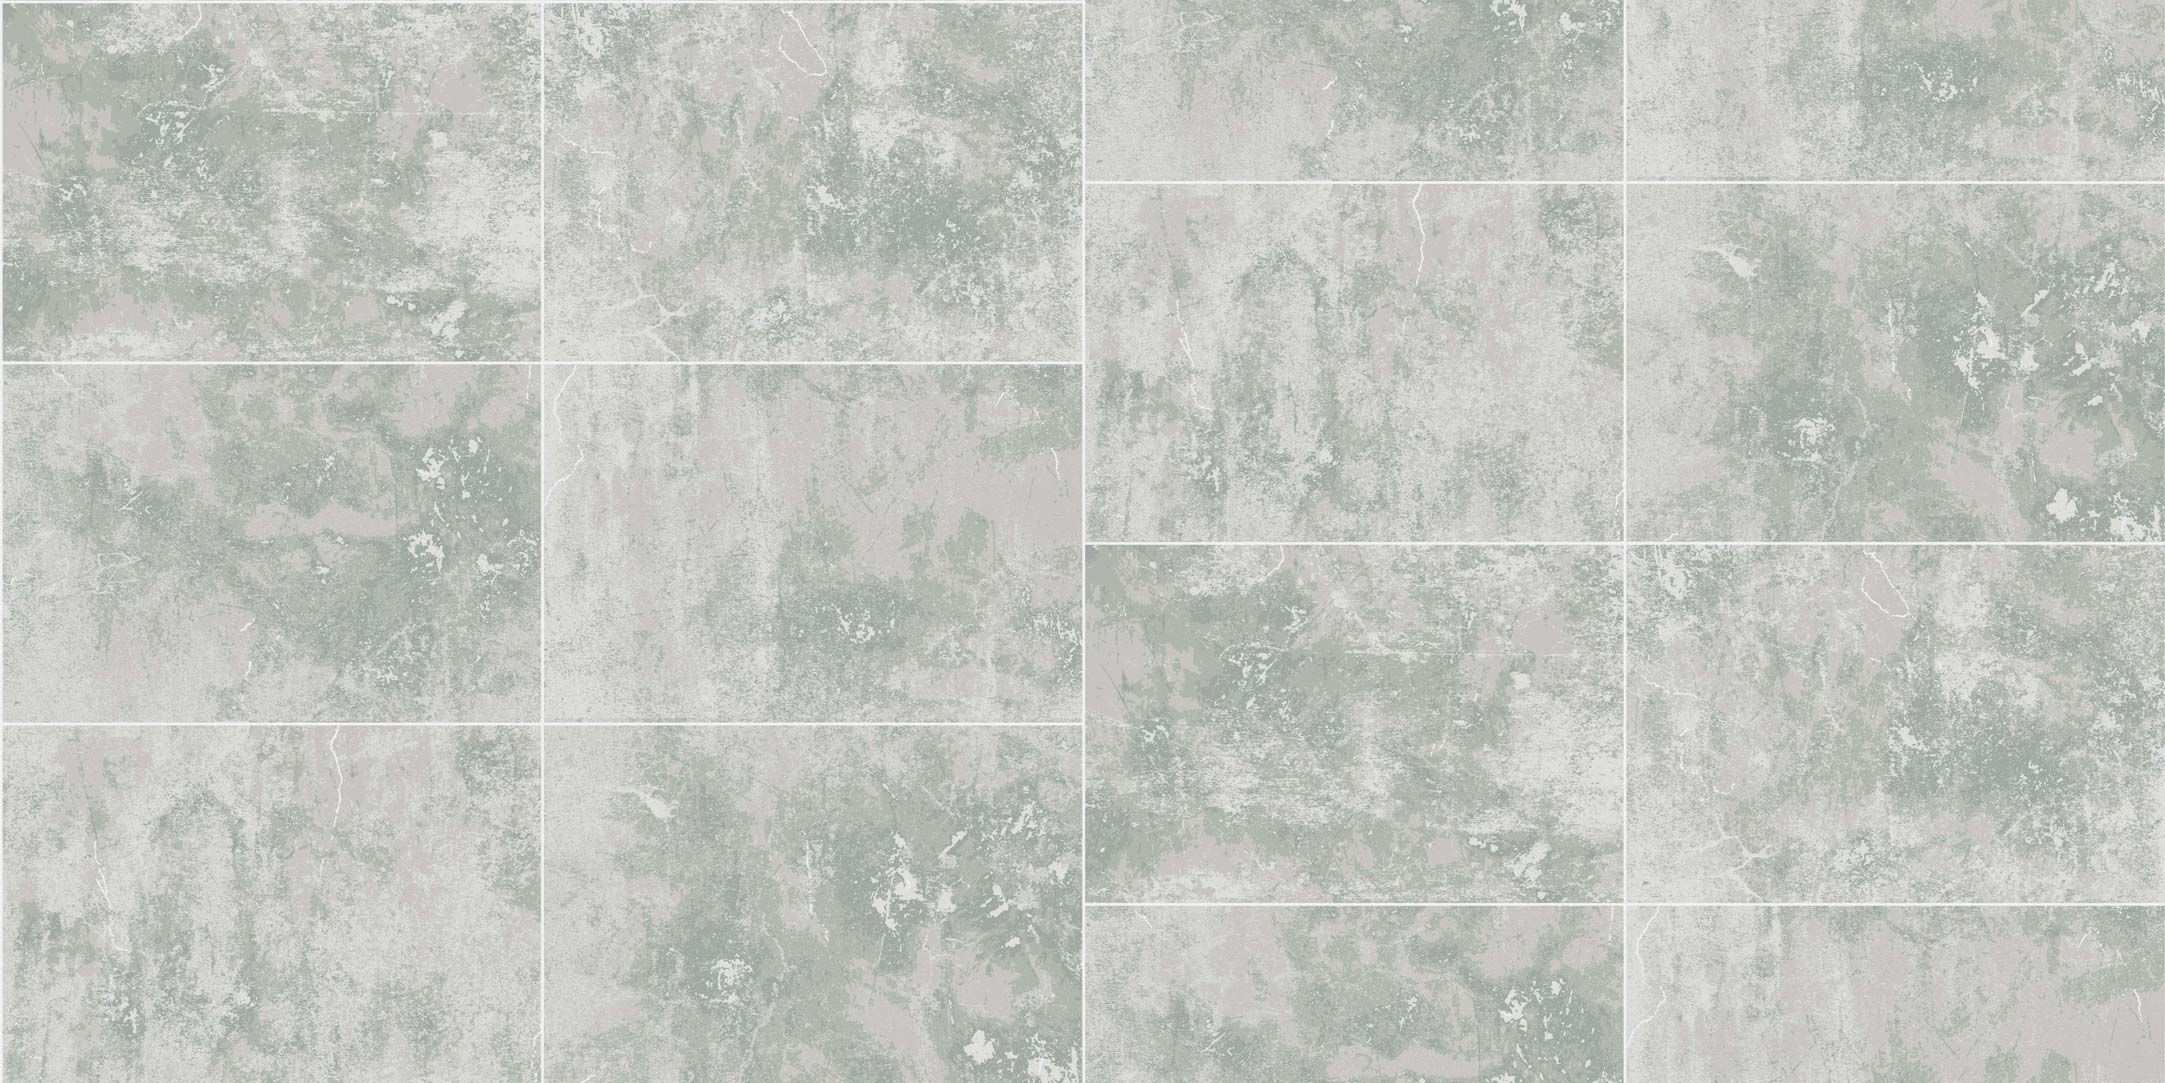 Contemporary wallpaper / geometric pattern / marble effect / tile ...